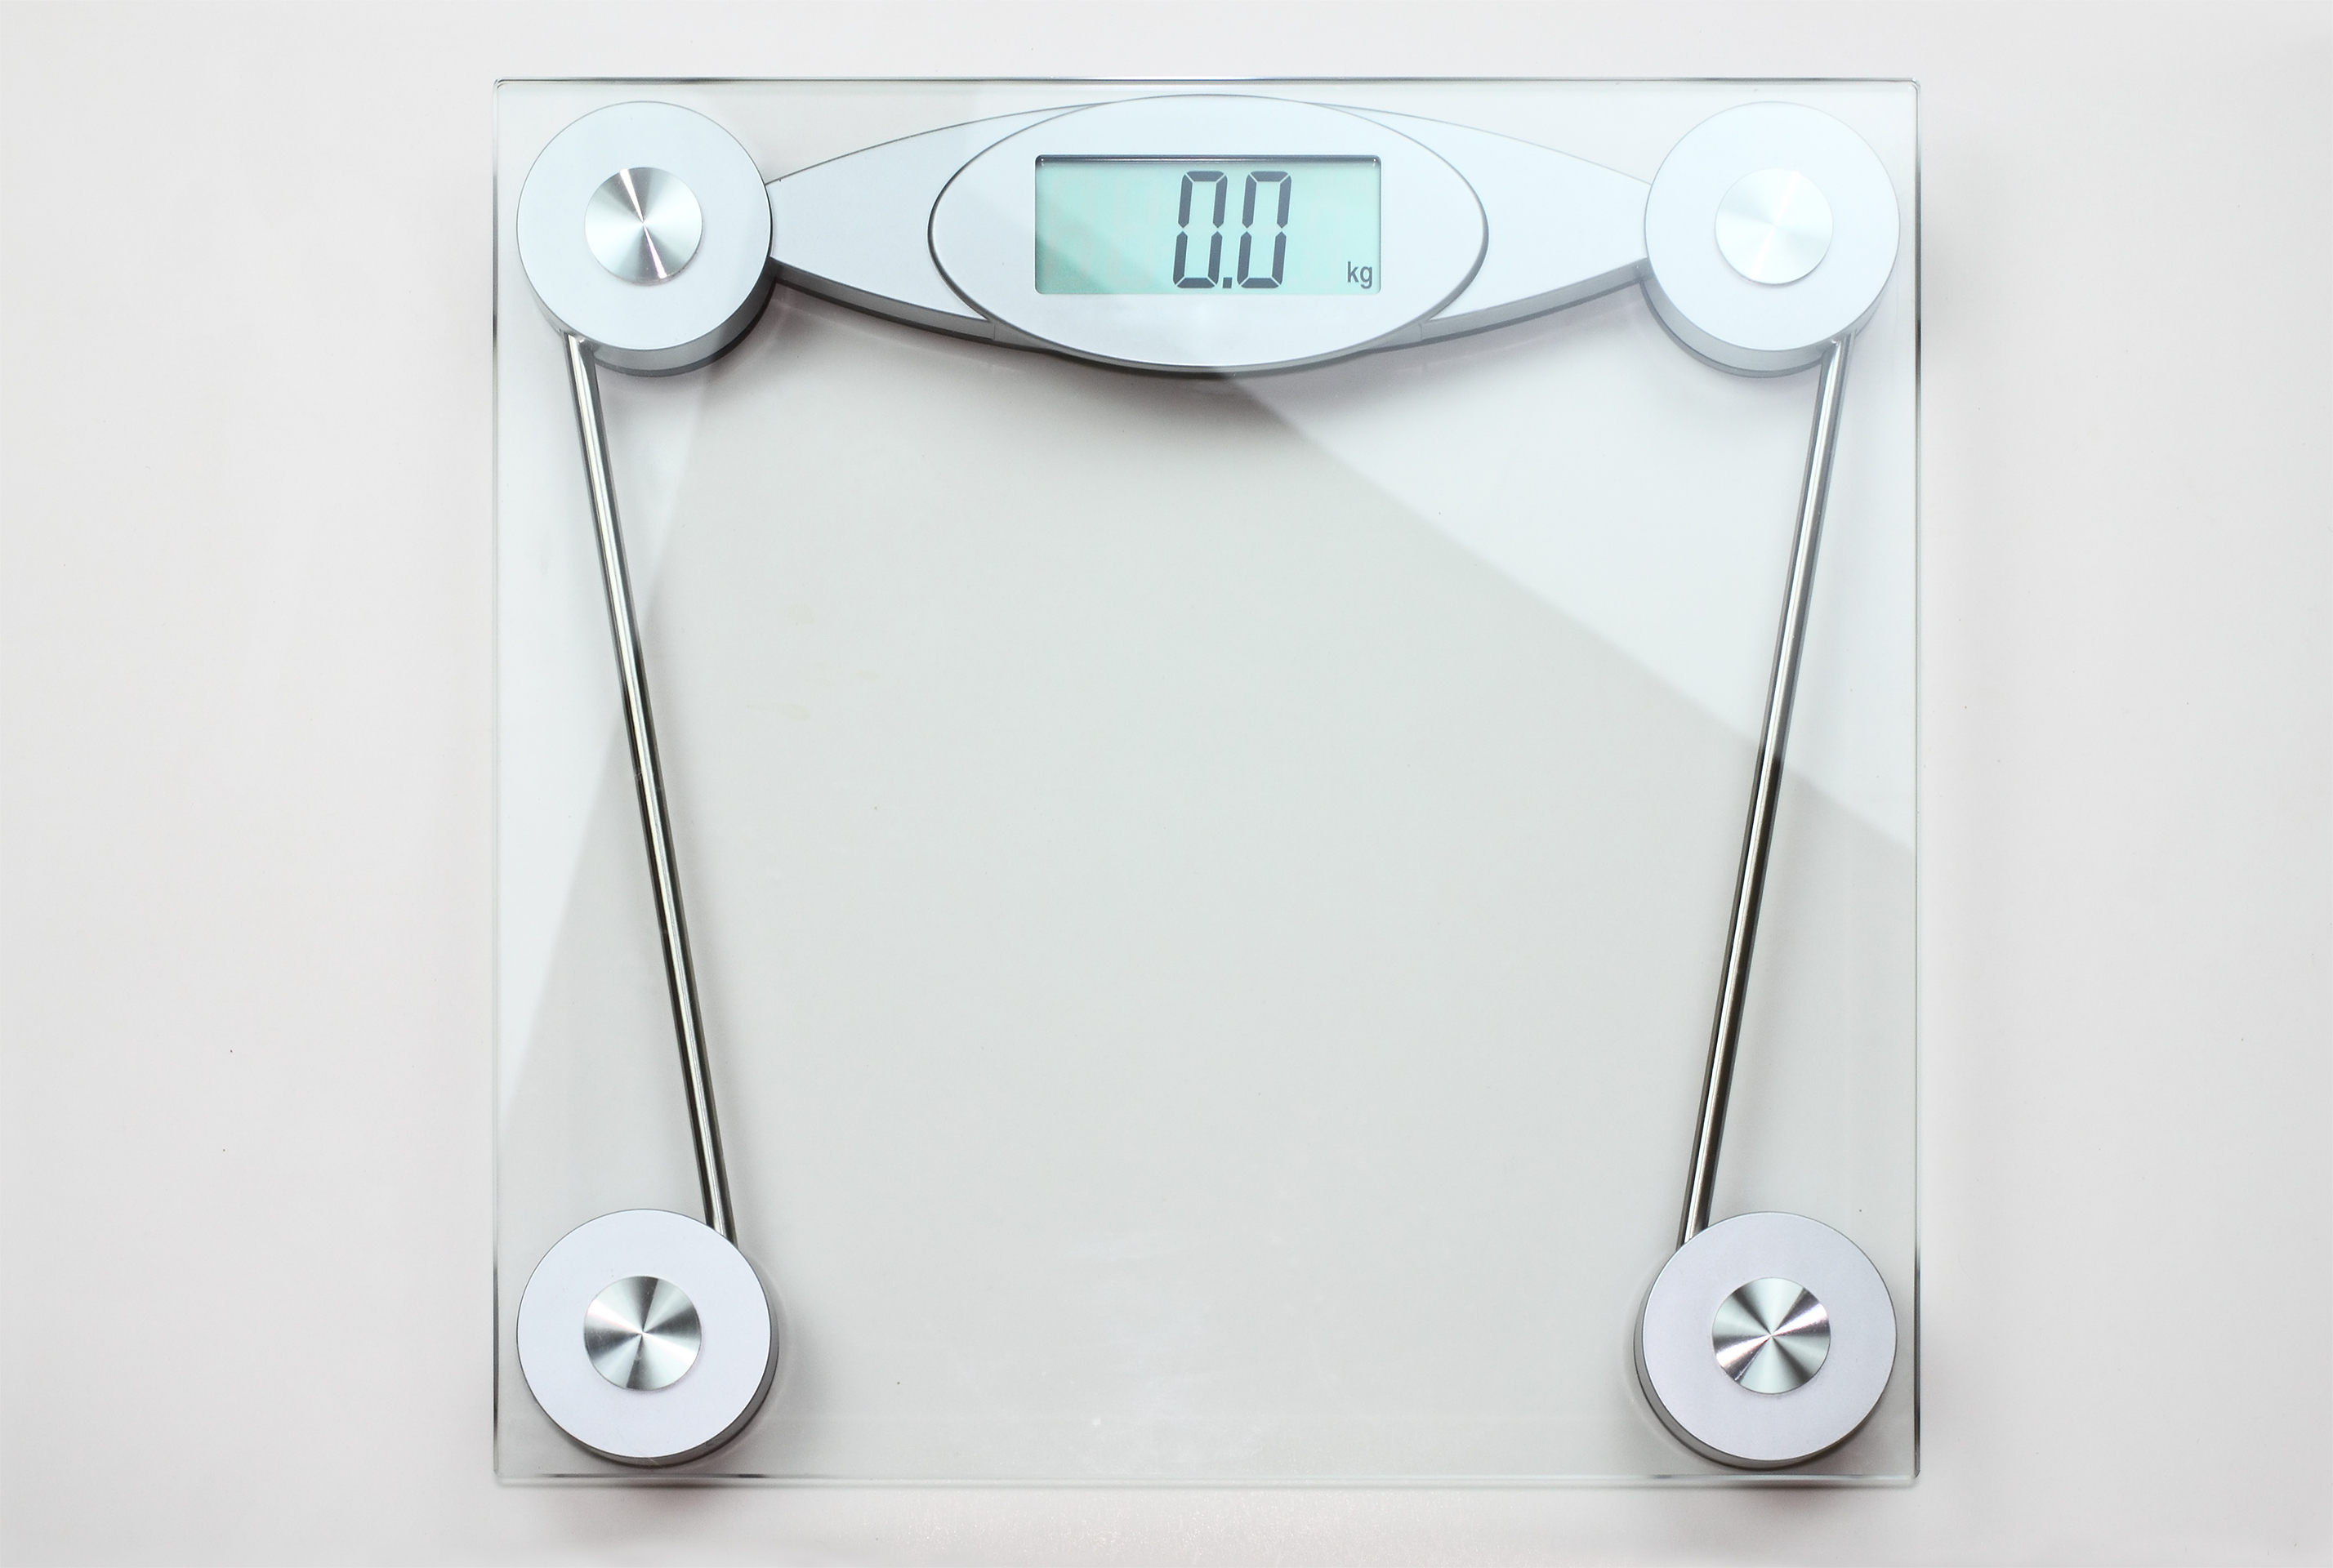 Most Accurate Body Weight Scales LIVESTRONGCOM - Digital vs analog bathroom scale